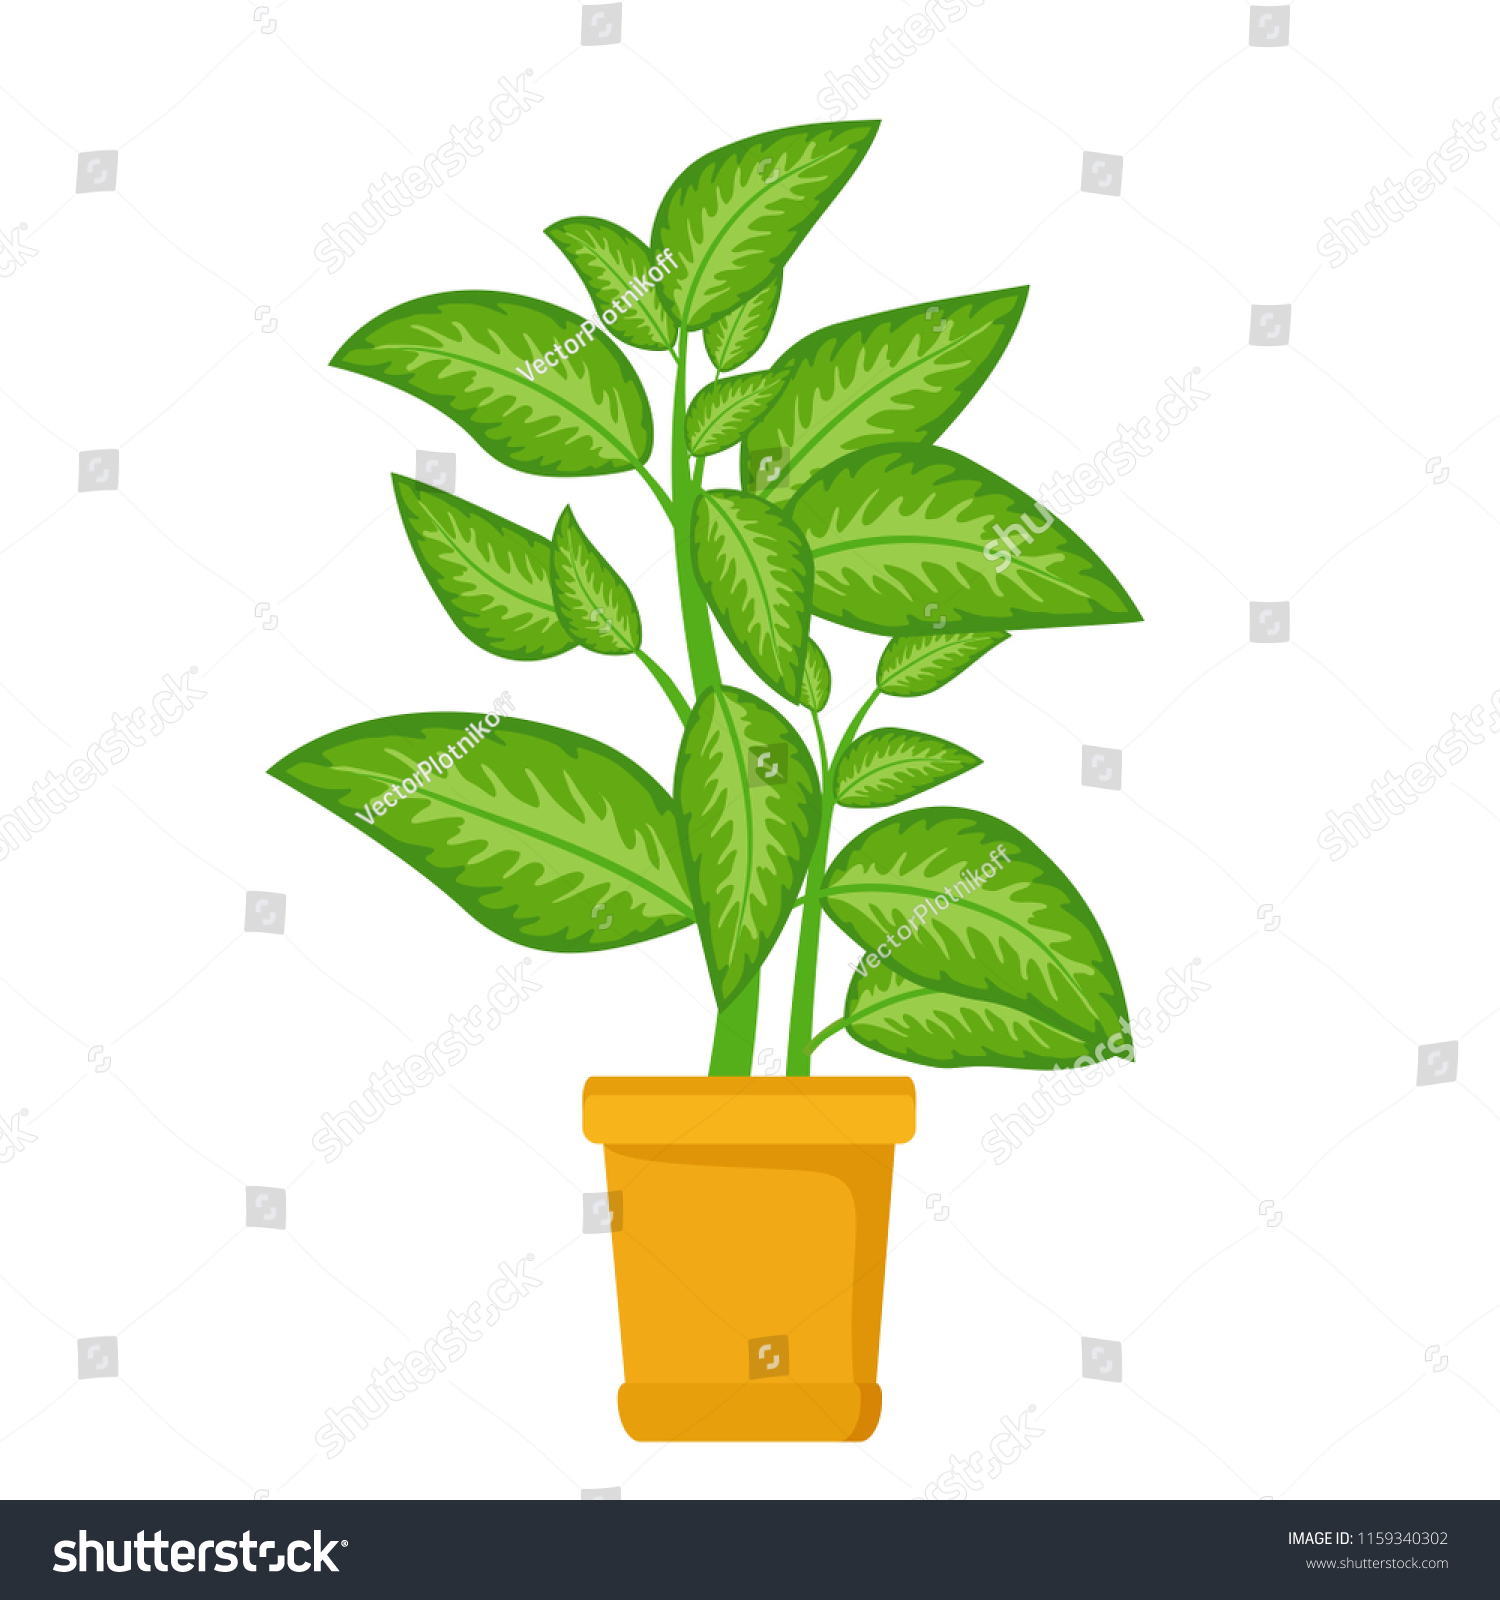 Dieffenbachia Tree House Plant In Flower Pot Decorative Indoor Houseplant